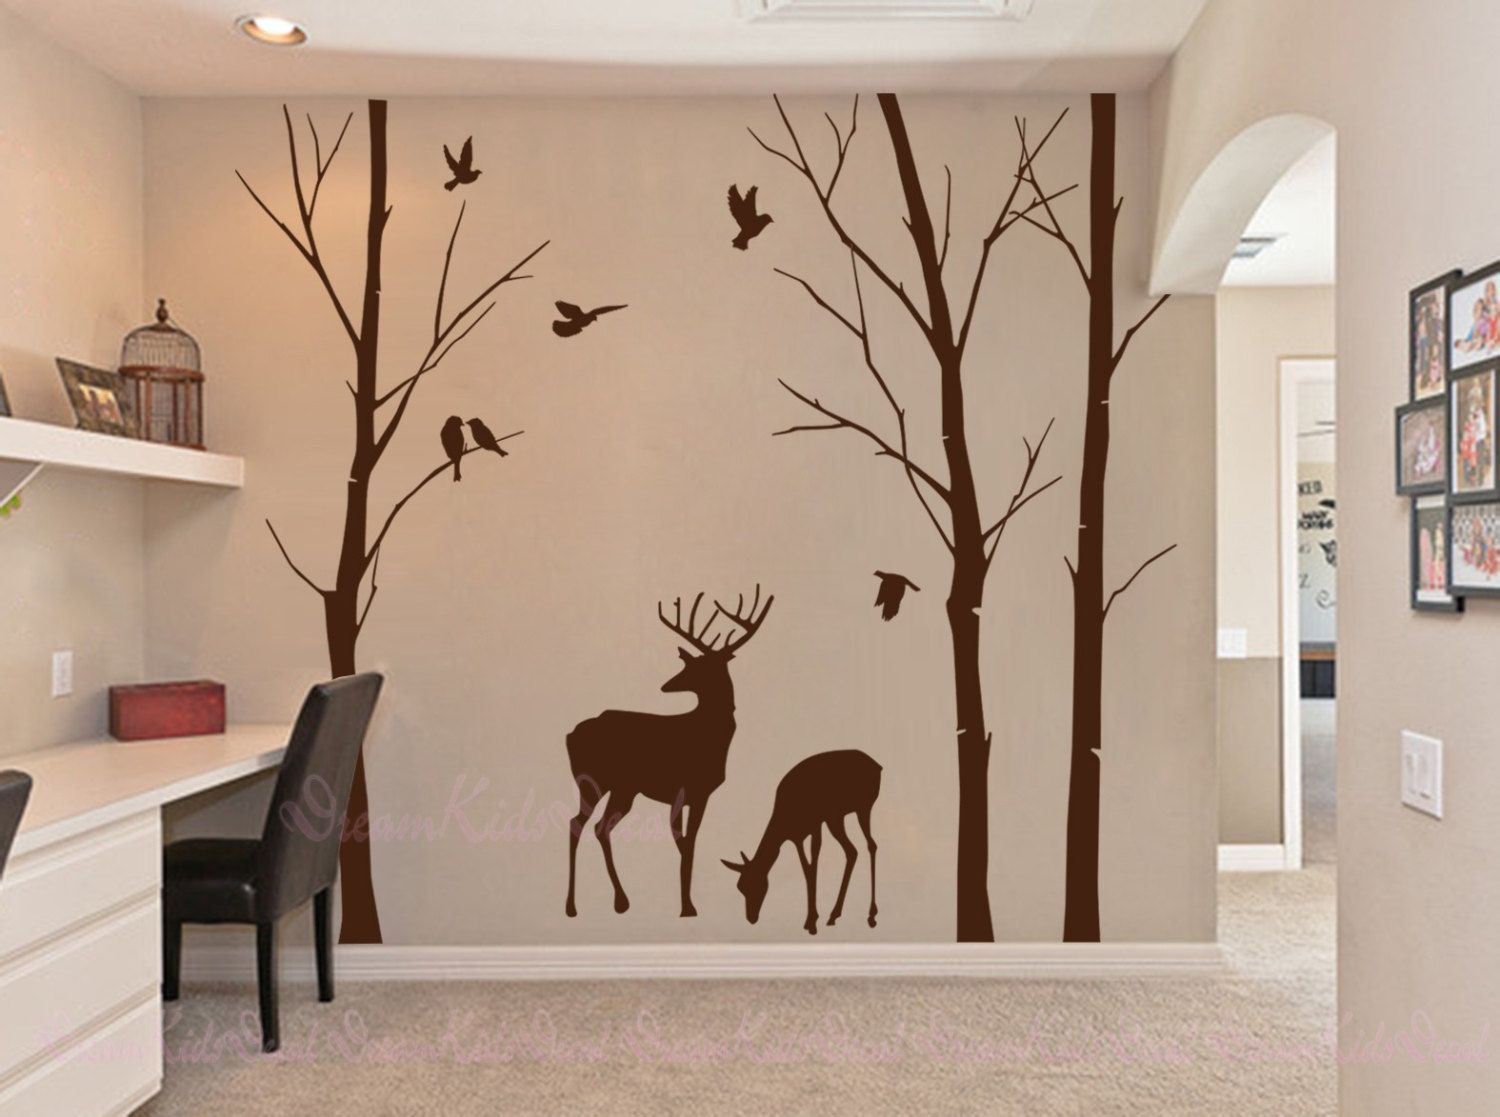 Birch trees decals deer wall decals nature wall decals vinyl birch trees decals deer wall decals nature wall decals vinyl wall decal wall decal stickers birch tree nursery wall stickers dk112 amipublicfo Gallery